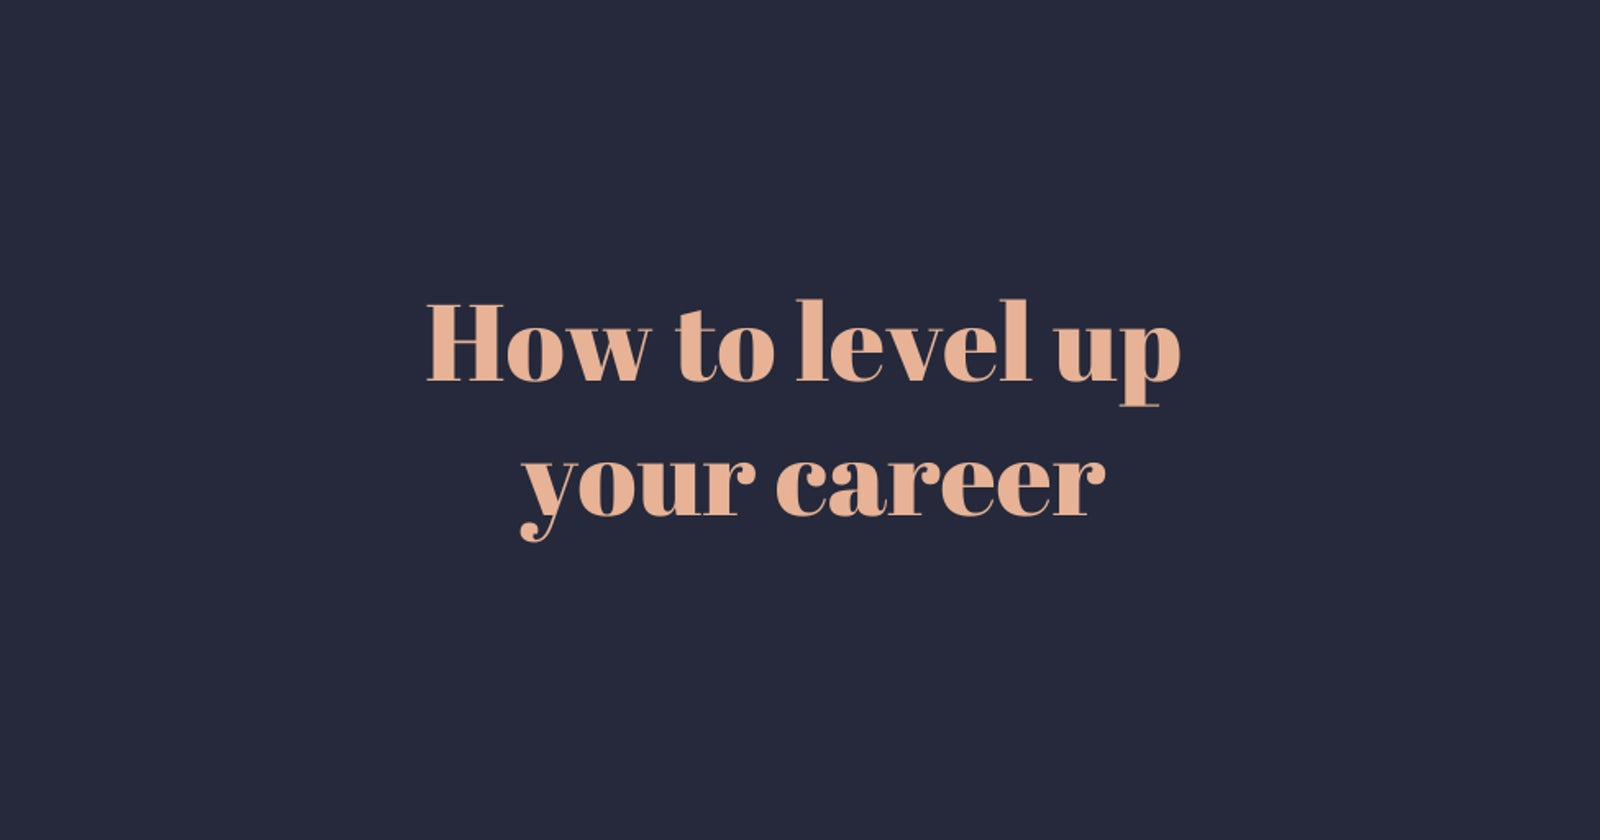 How to level up your career